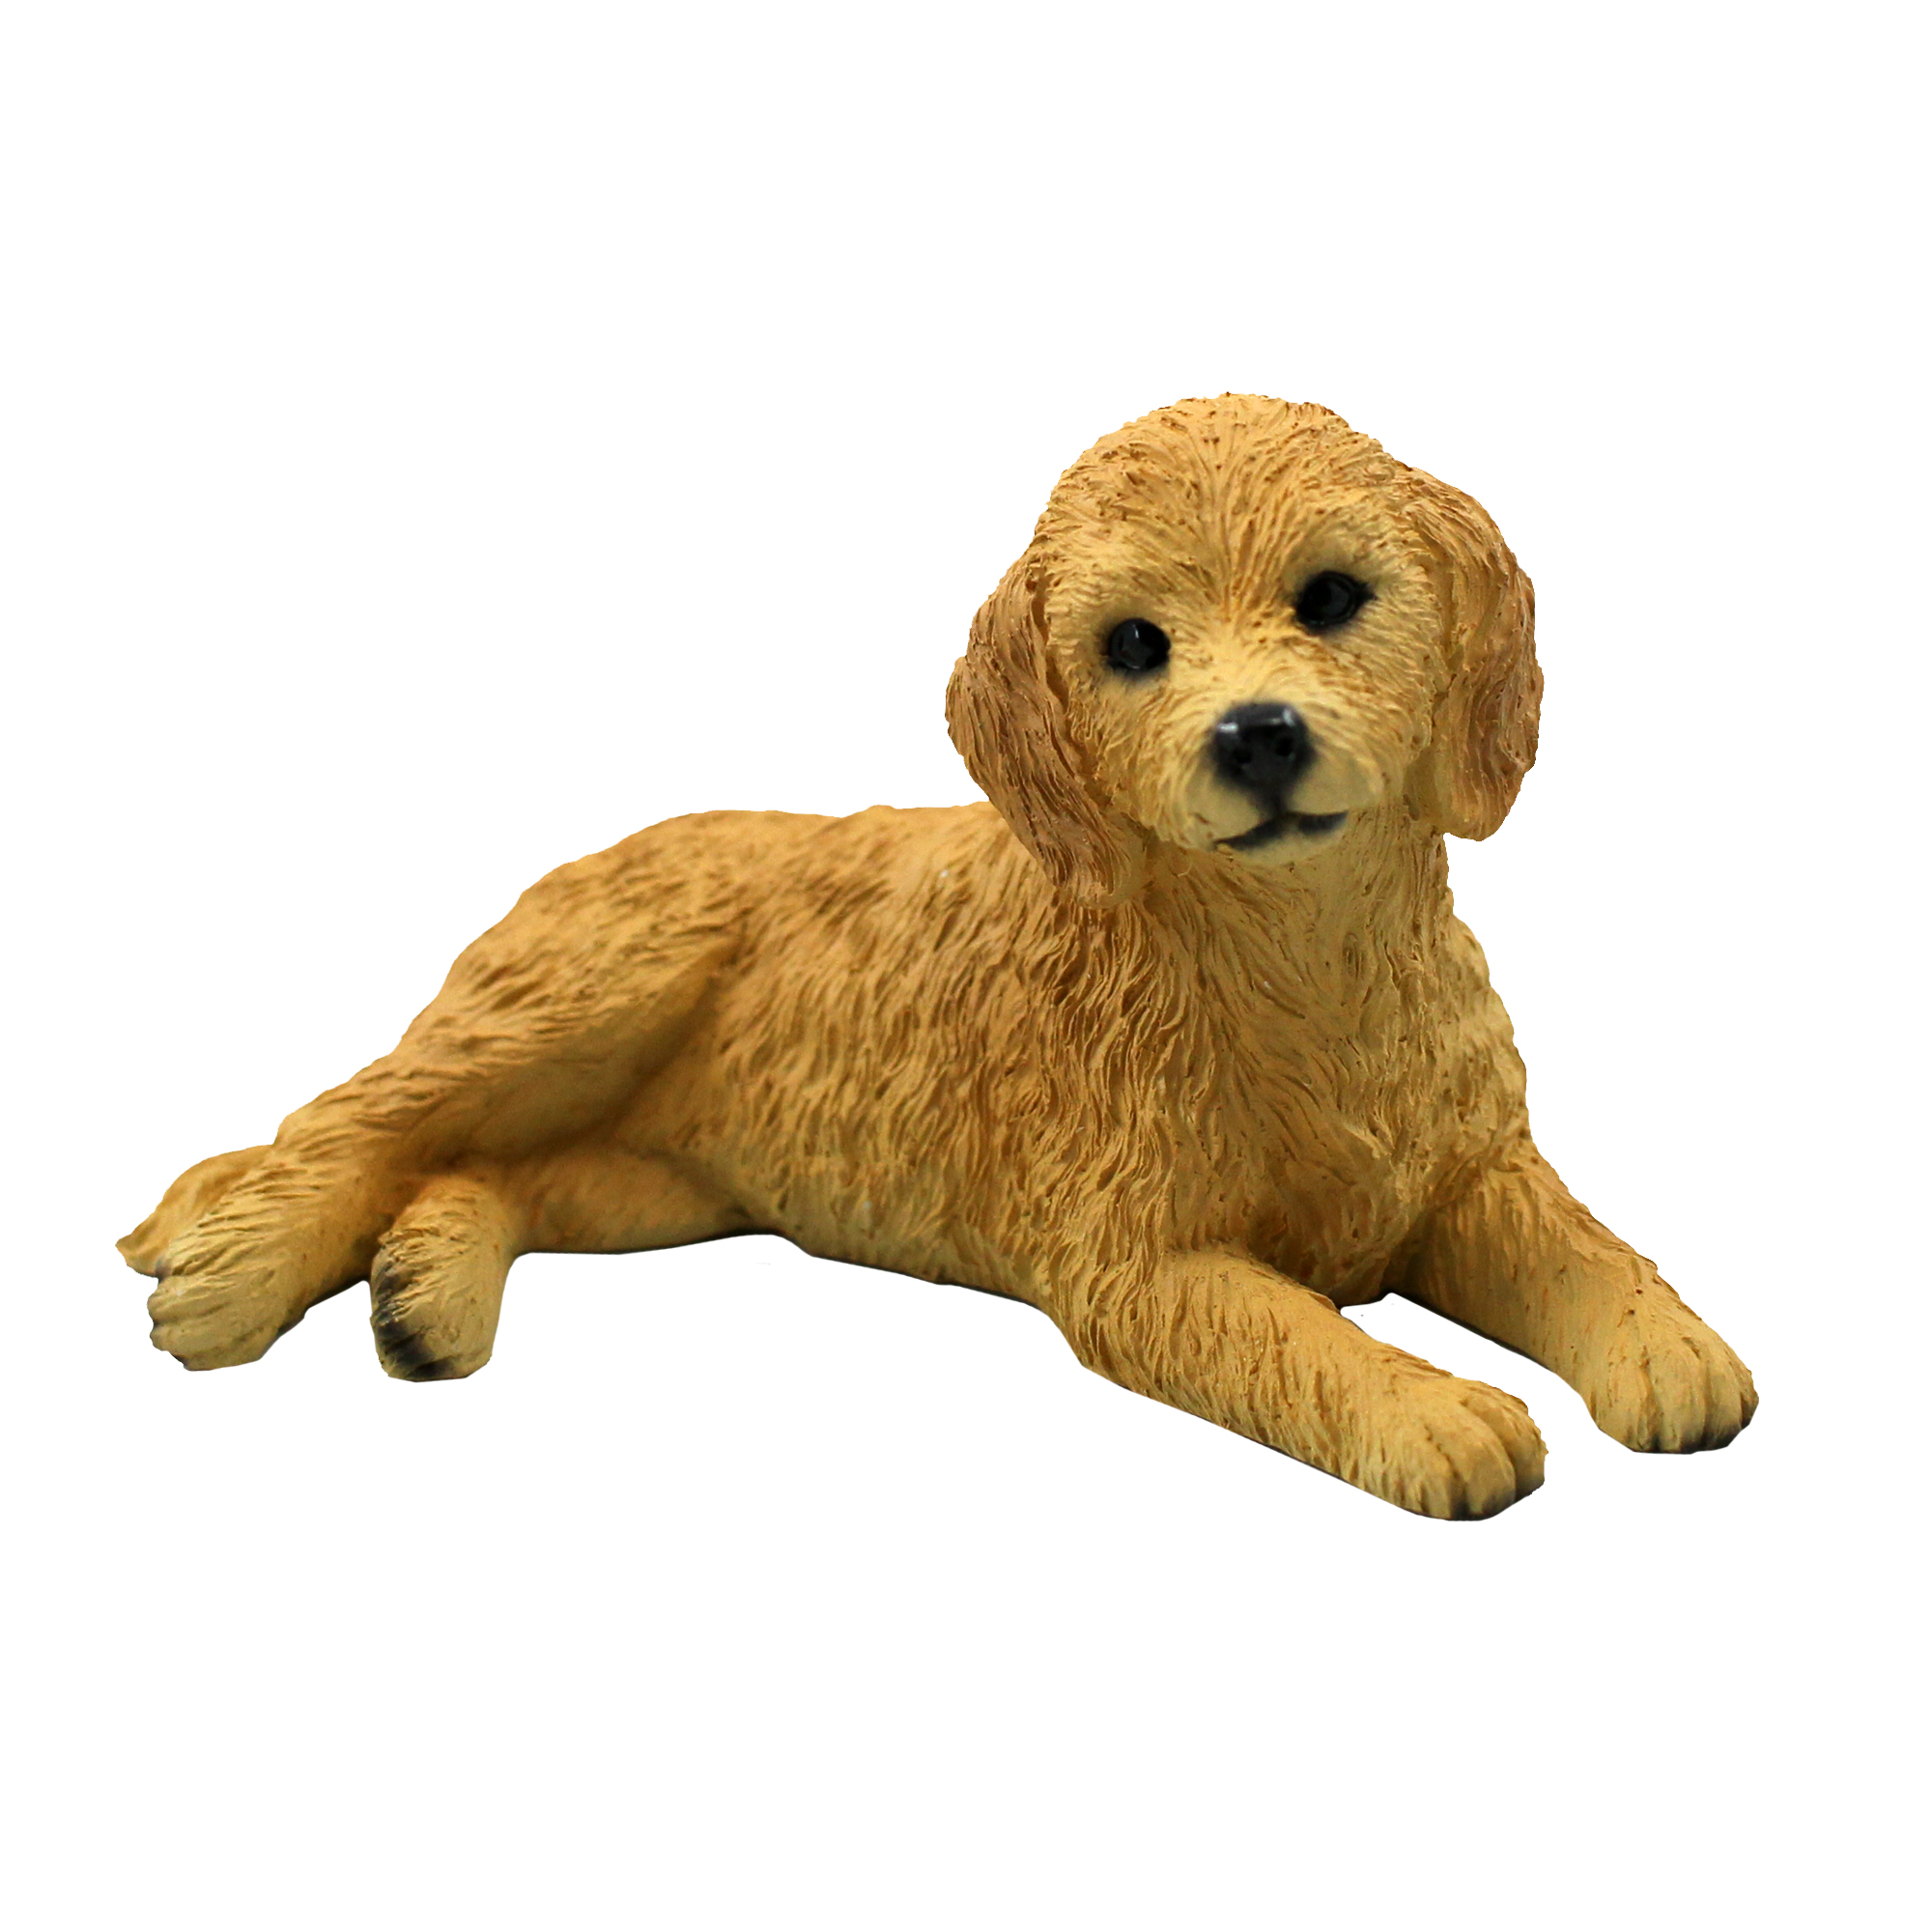 goldendoodle standard figurine - Goldendoodle Christmas Decorations